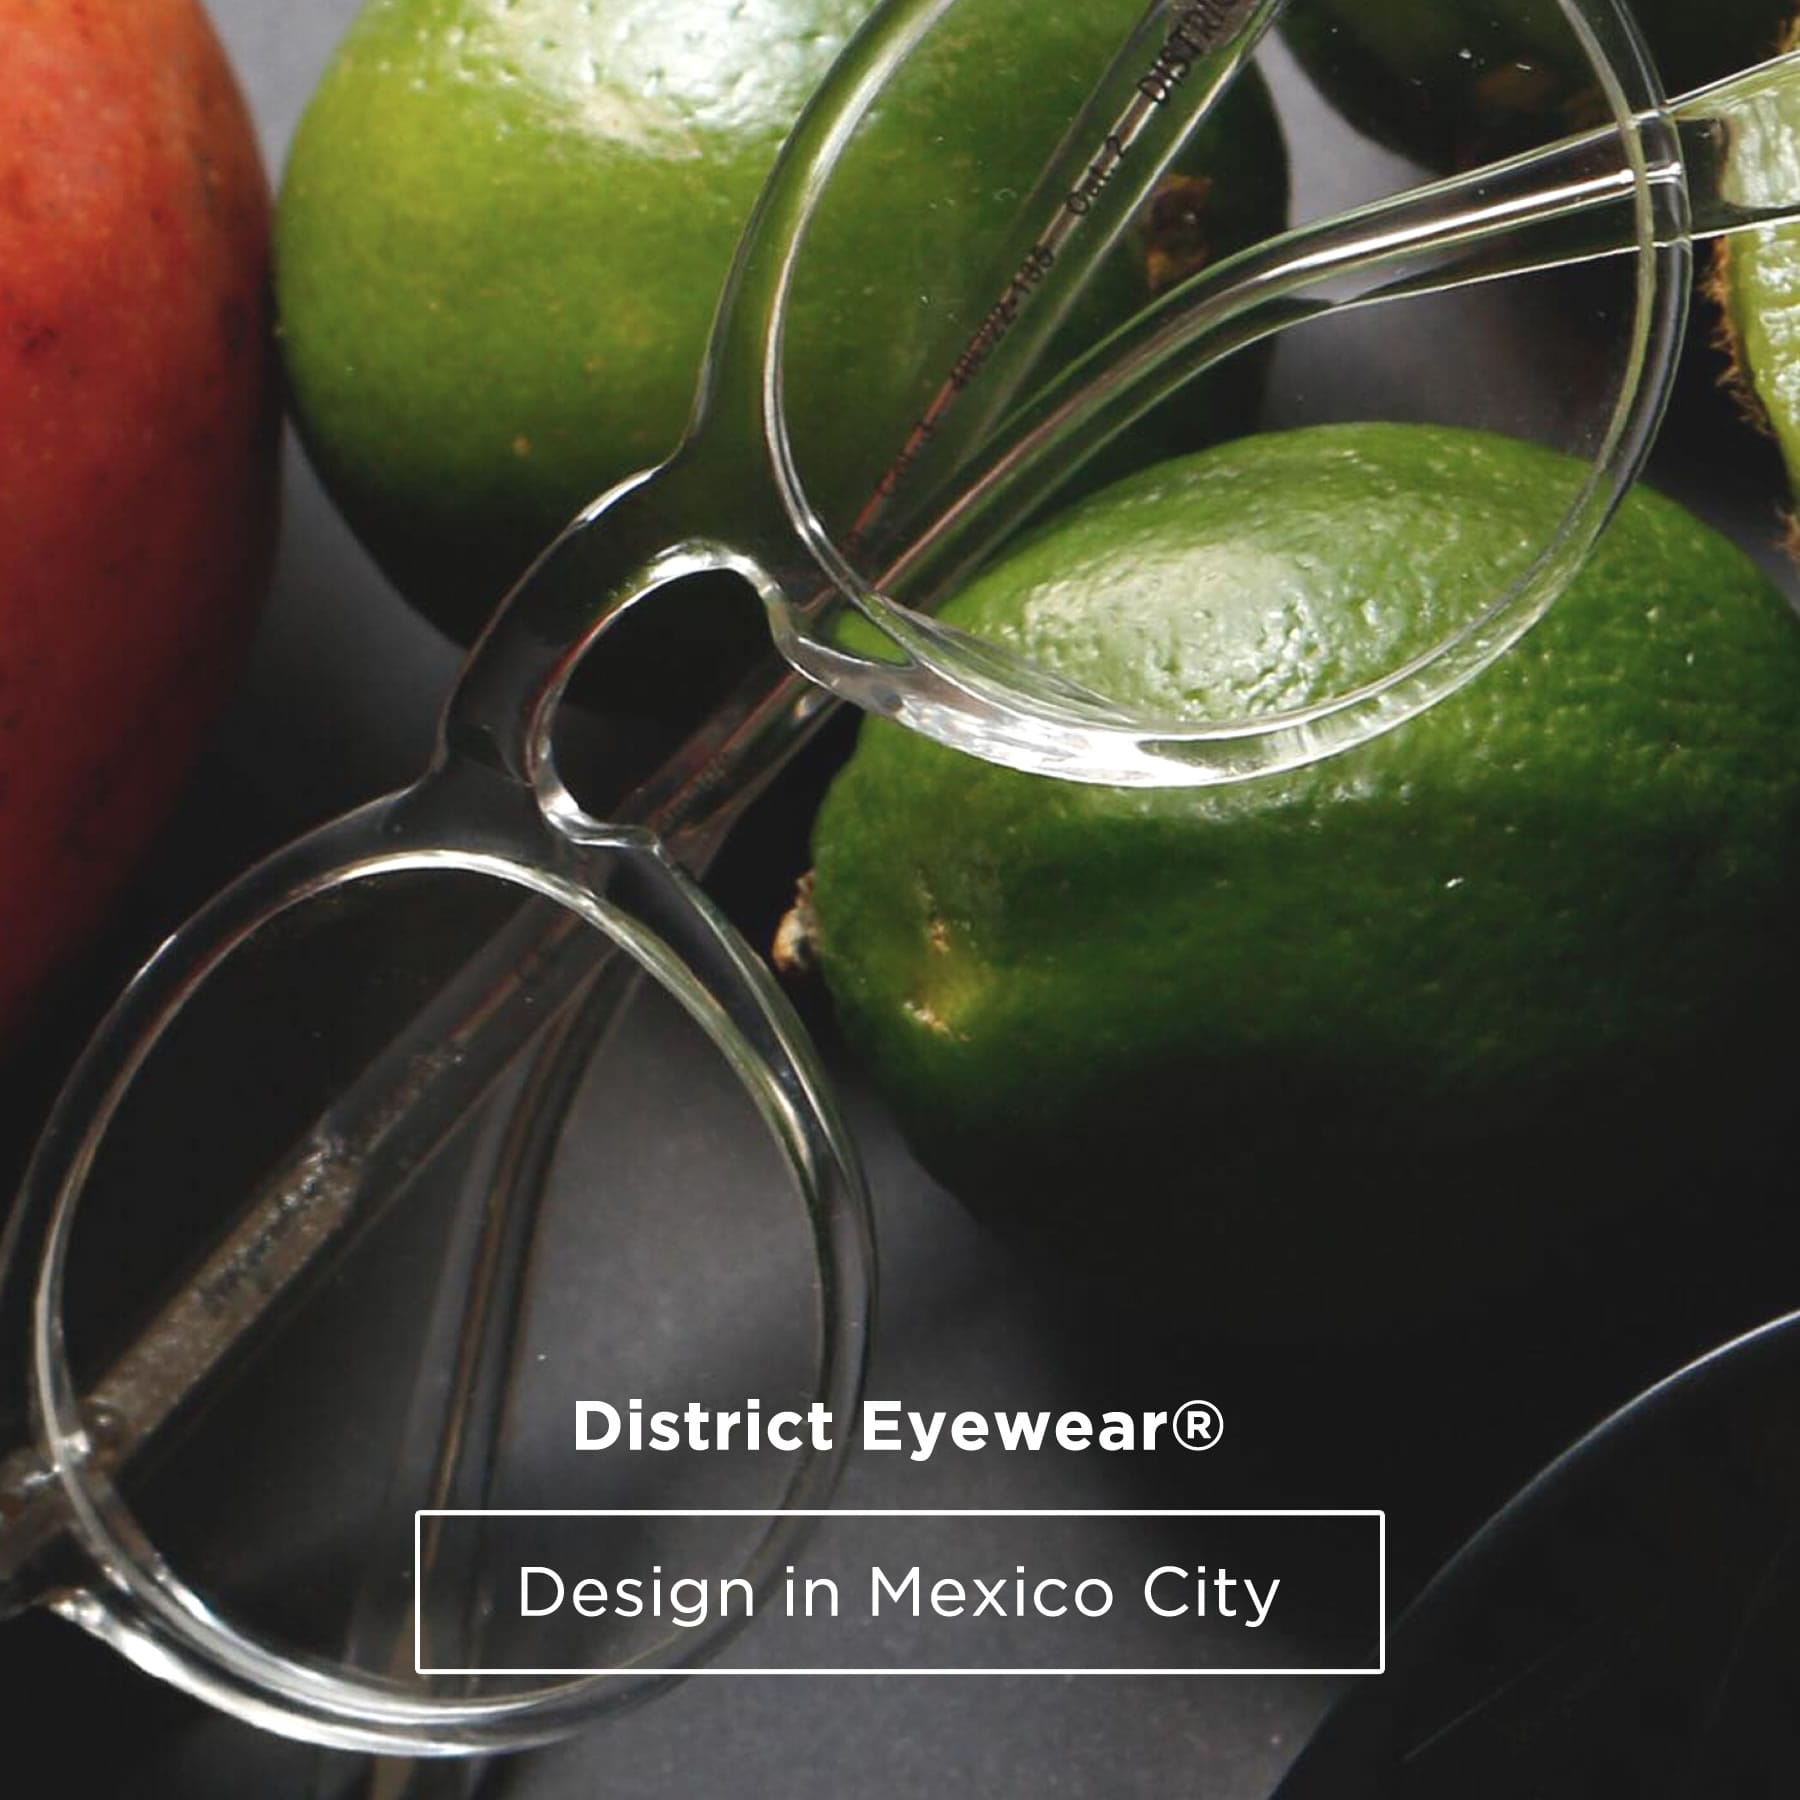 Armzones de Lentes District Eyewear graduables